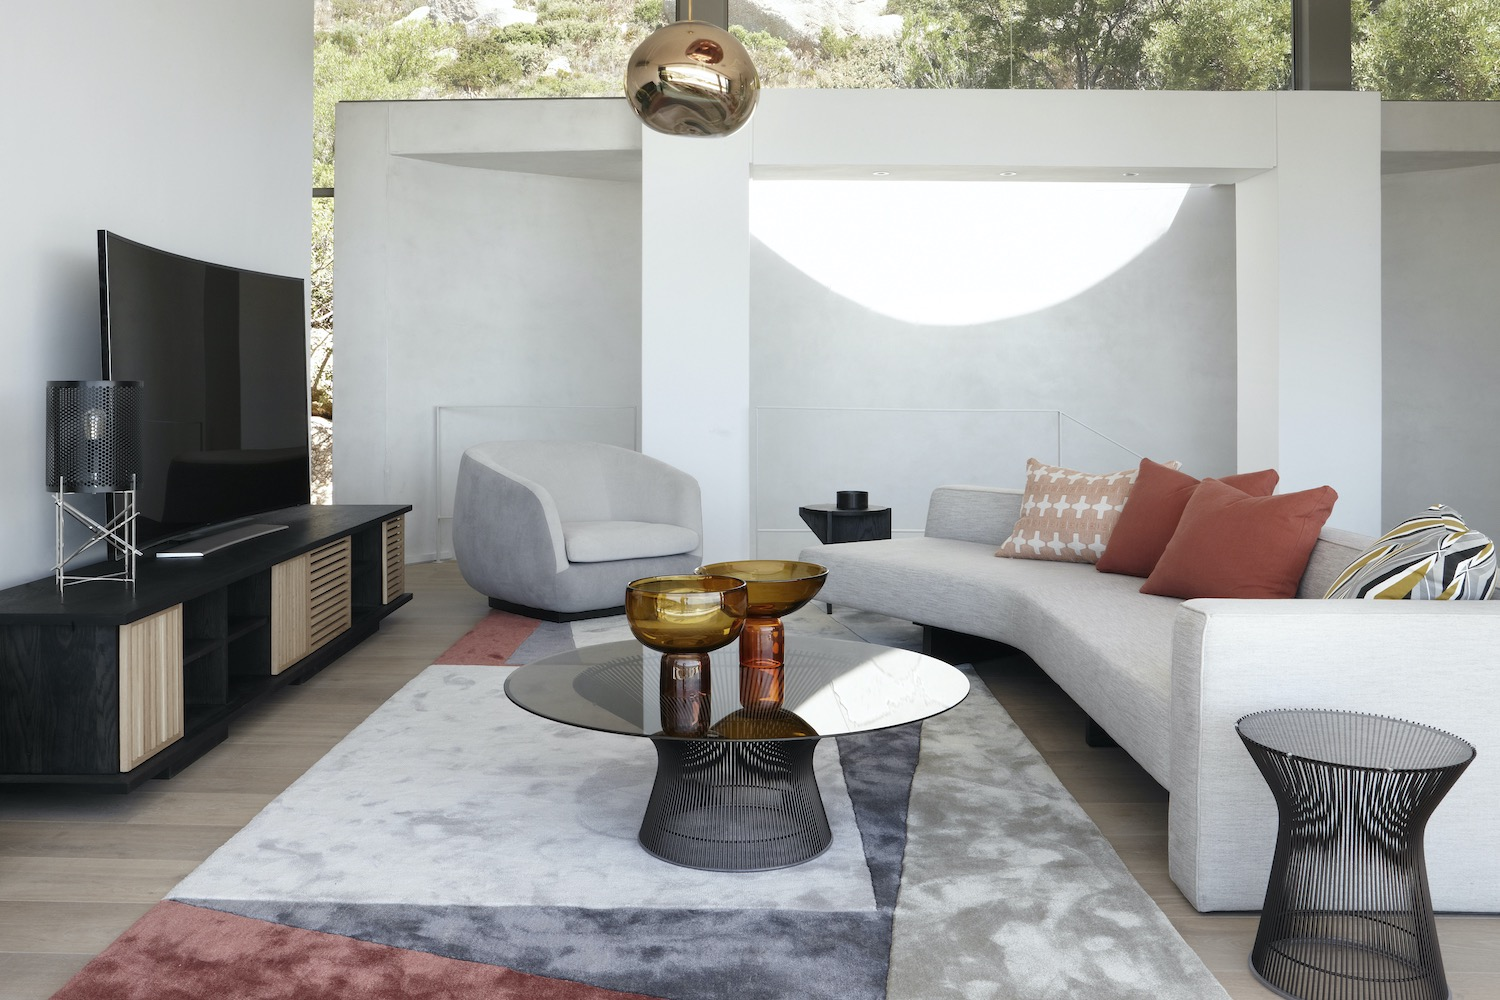 living room design with cozy and comfortable sofa